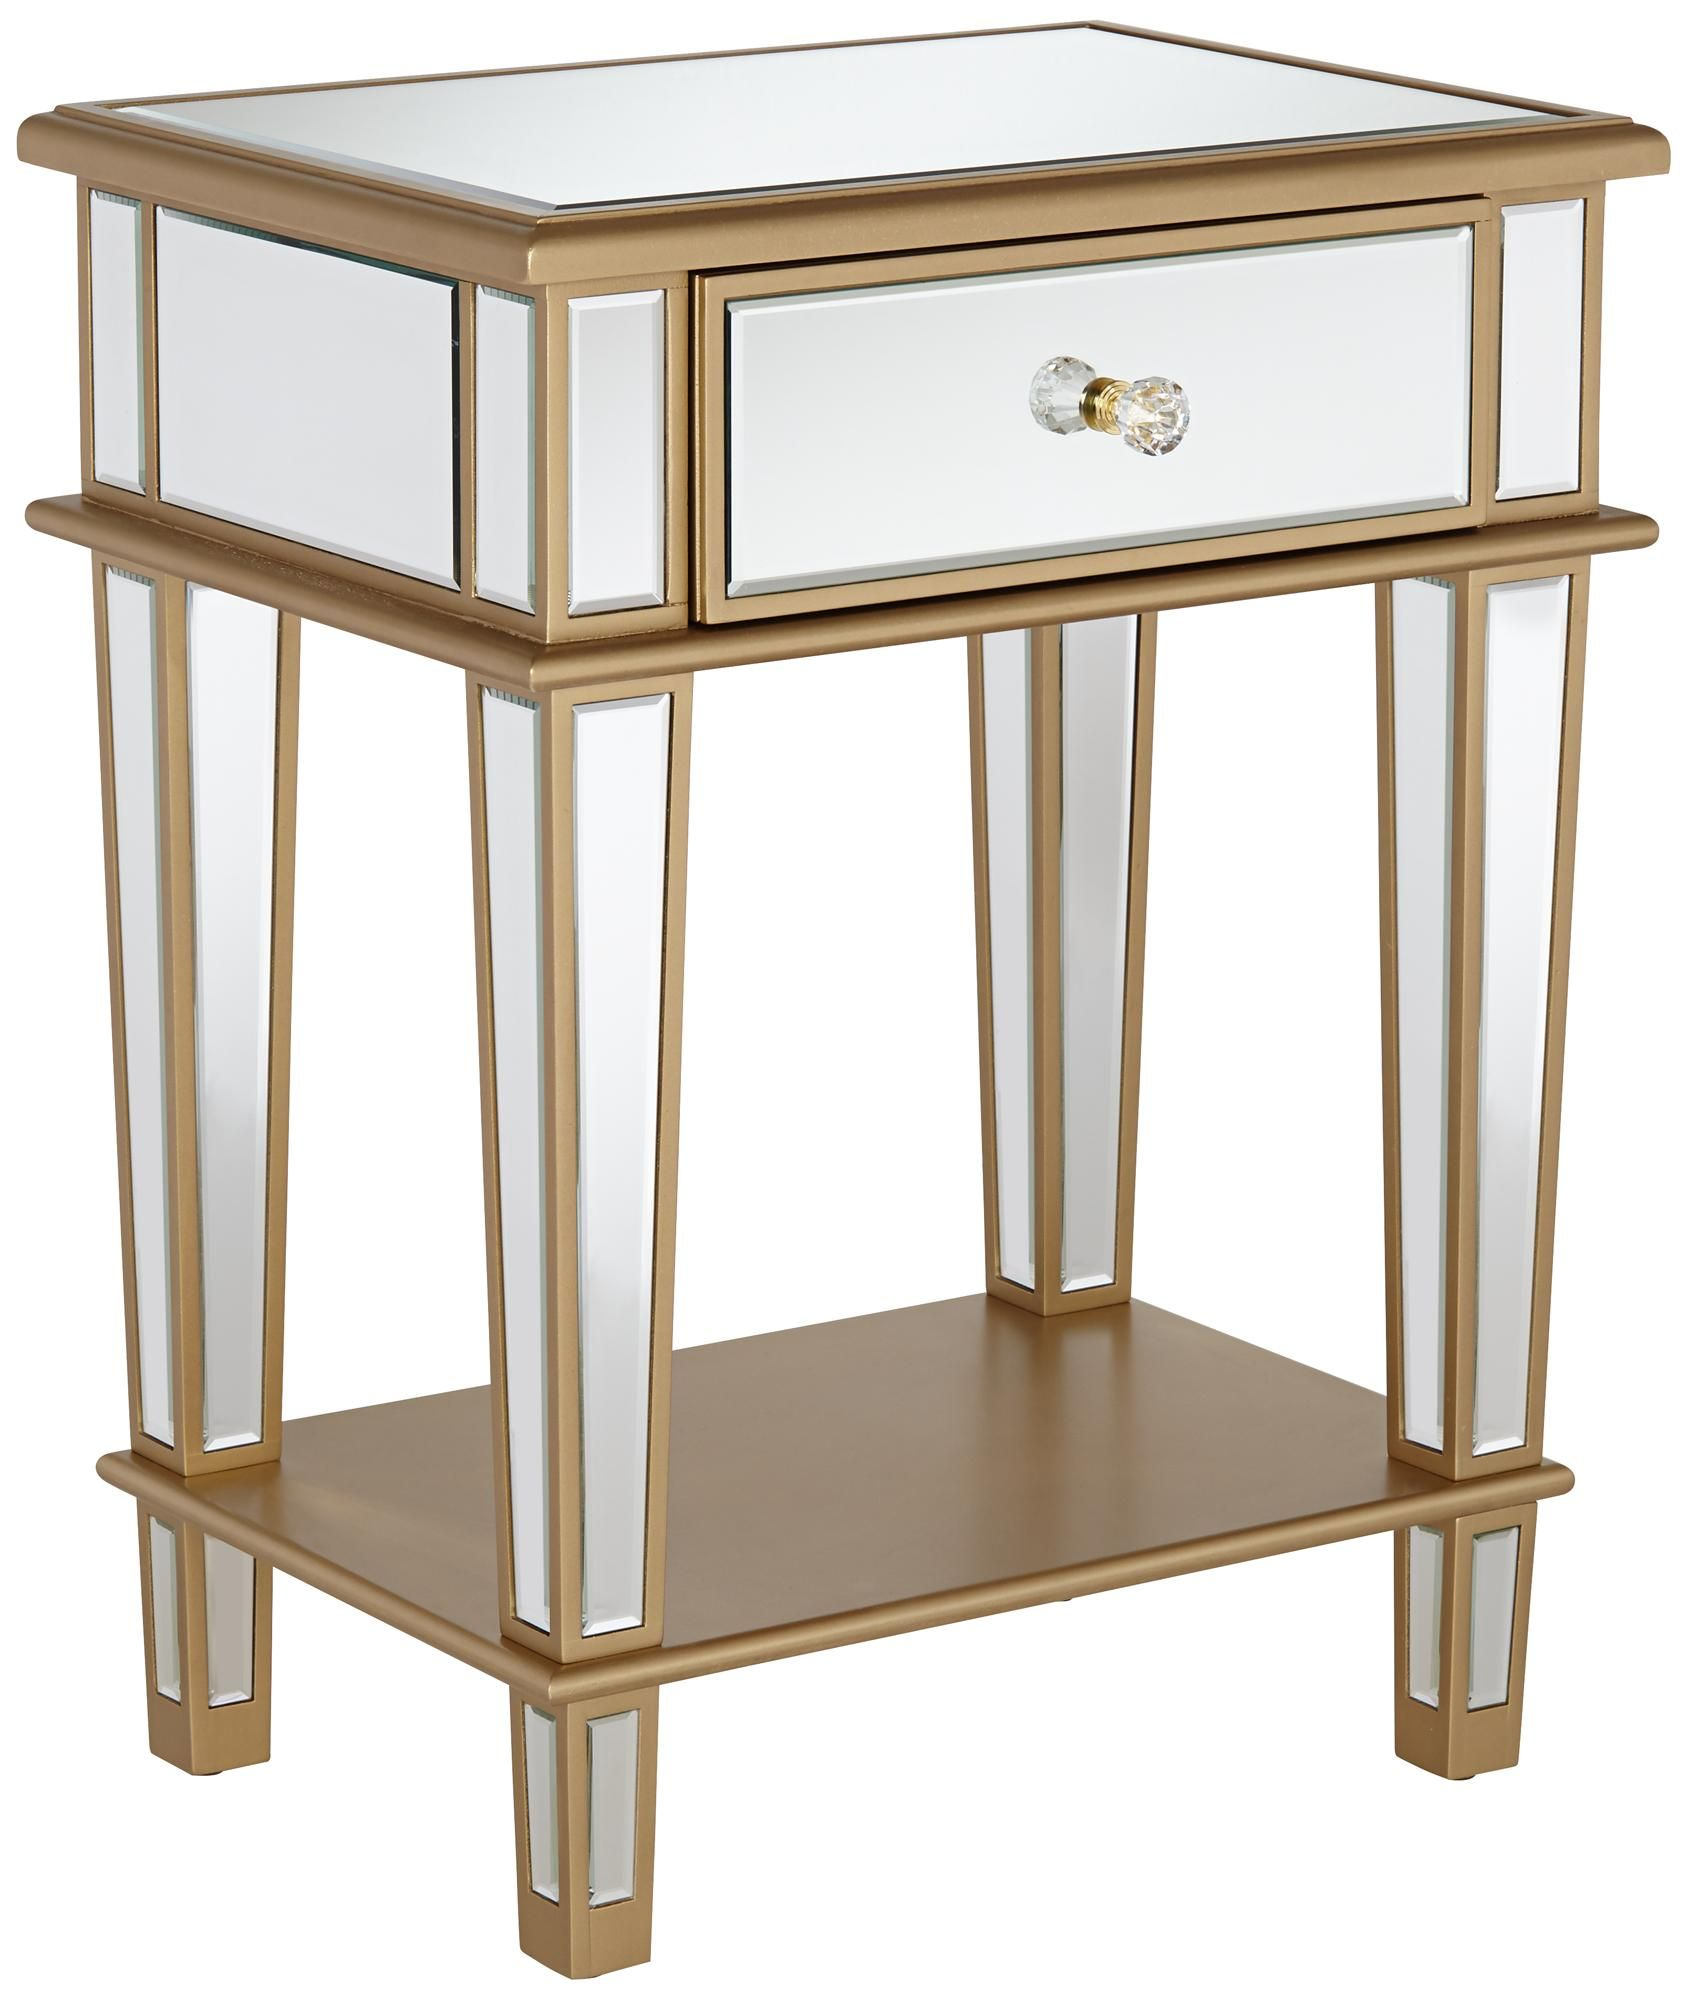 Joslyn 1 Drawer Gold Mirrored End Table Mirrored End Table Contemporary End Tables End Tables